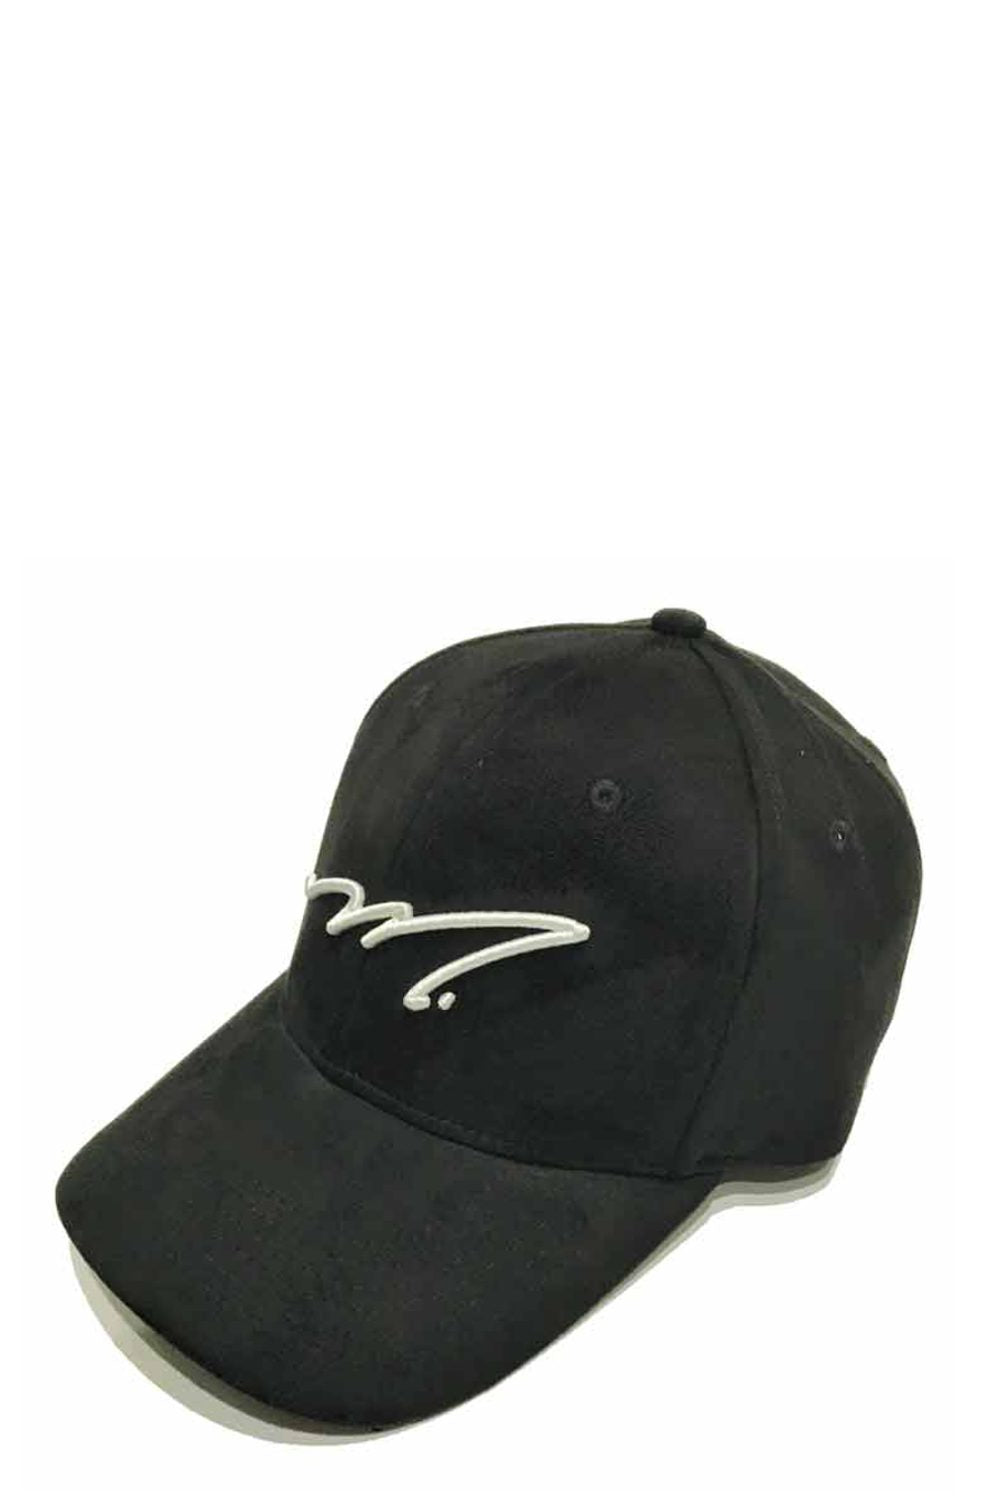 Mercier Signature Suede Trucker Cap - Black/White